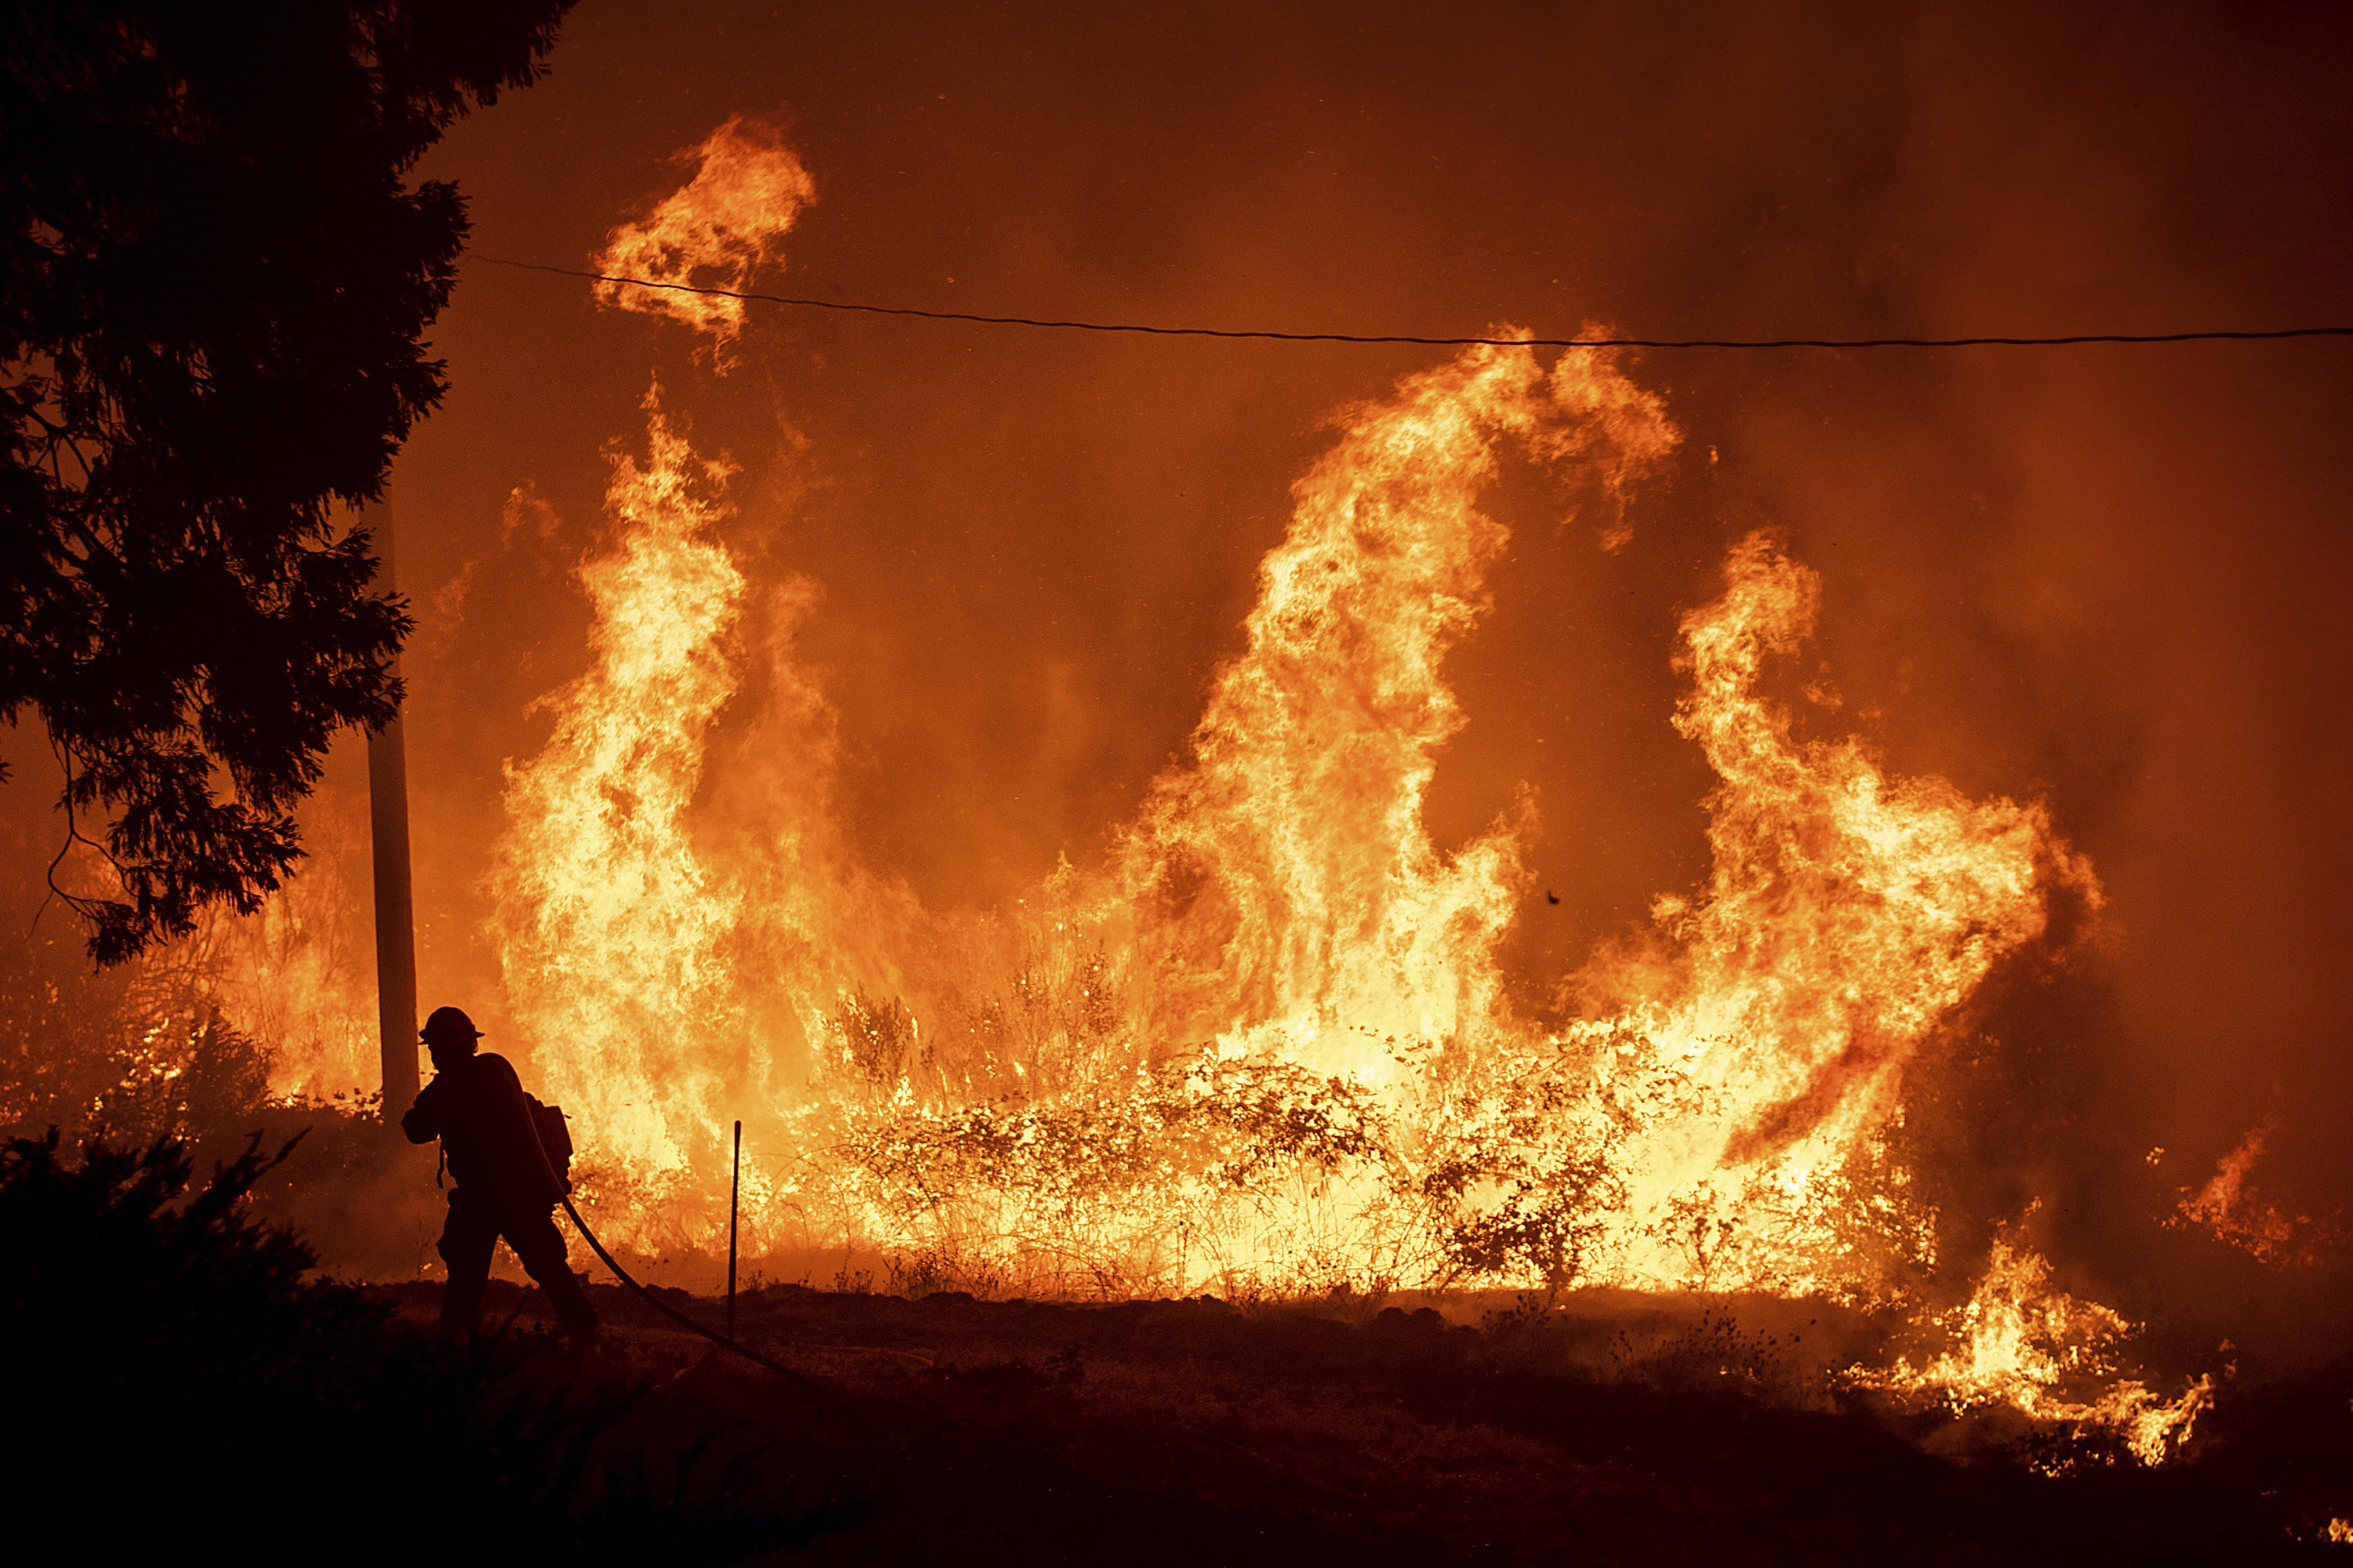 <p>A firefighter passes flames from a backfire while battling the Delta Fire in the Shasta-Trinity National Forest, Calif., Thursday, Sept. 6, 2018. (Photo: Noah Berger/AP) </p>